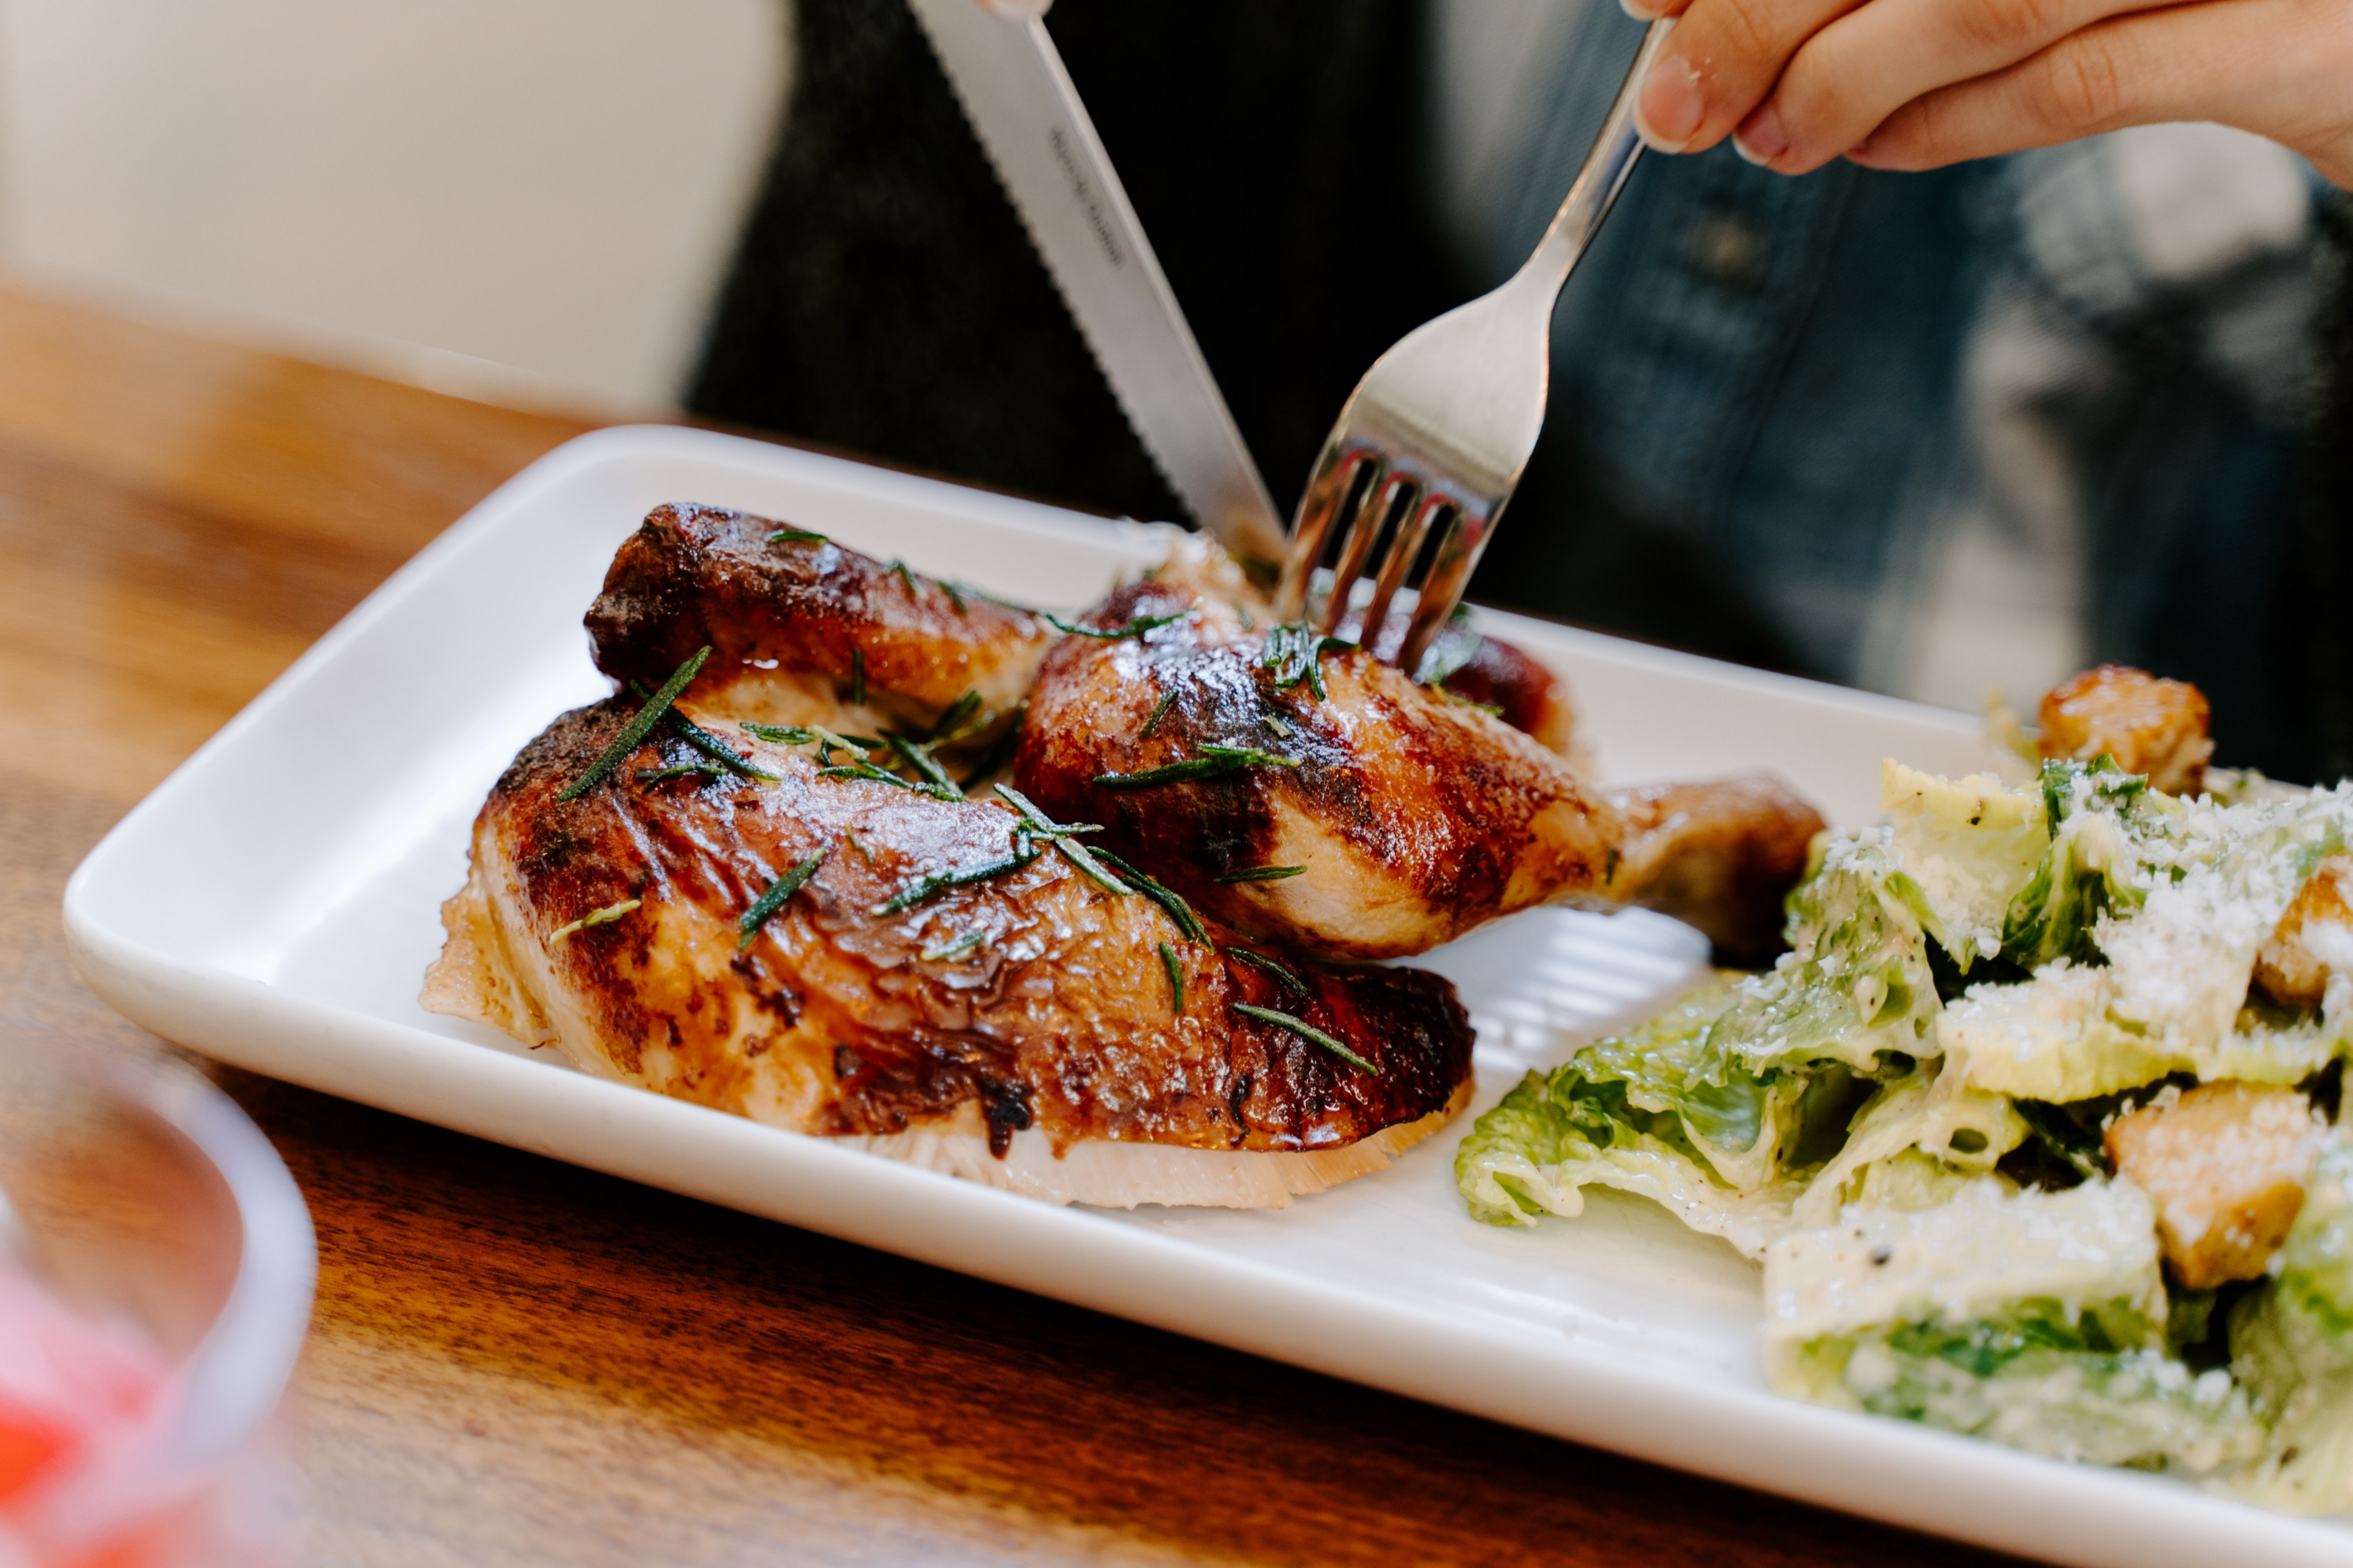 Roasted chicken on pate, being cut by knife and fork.